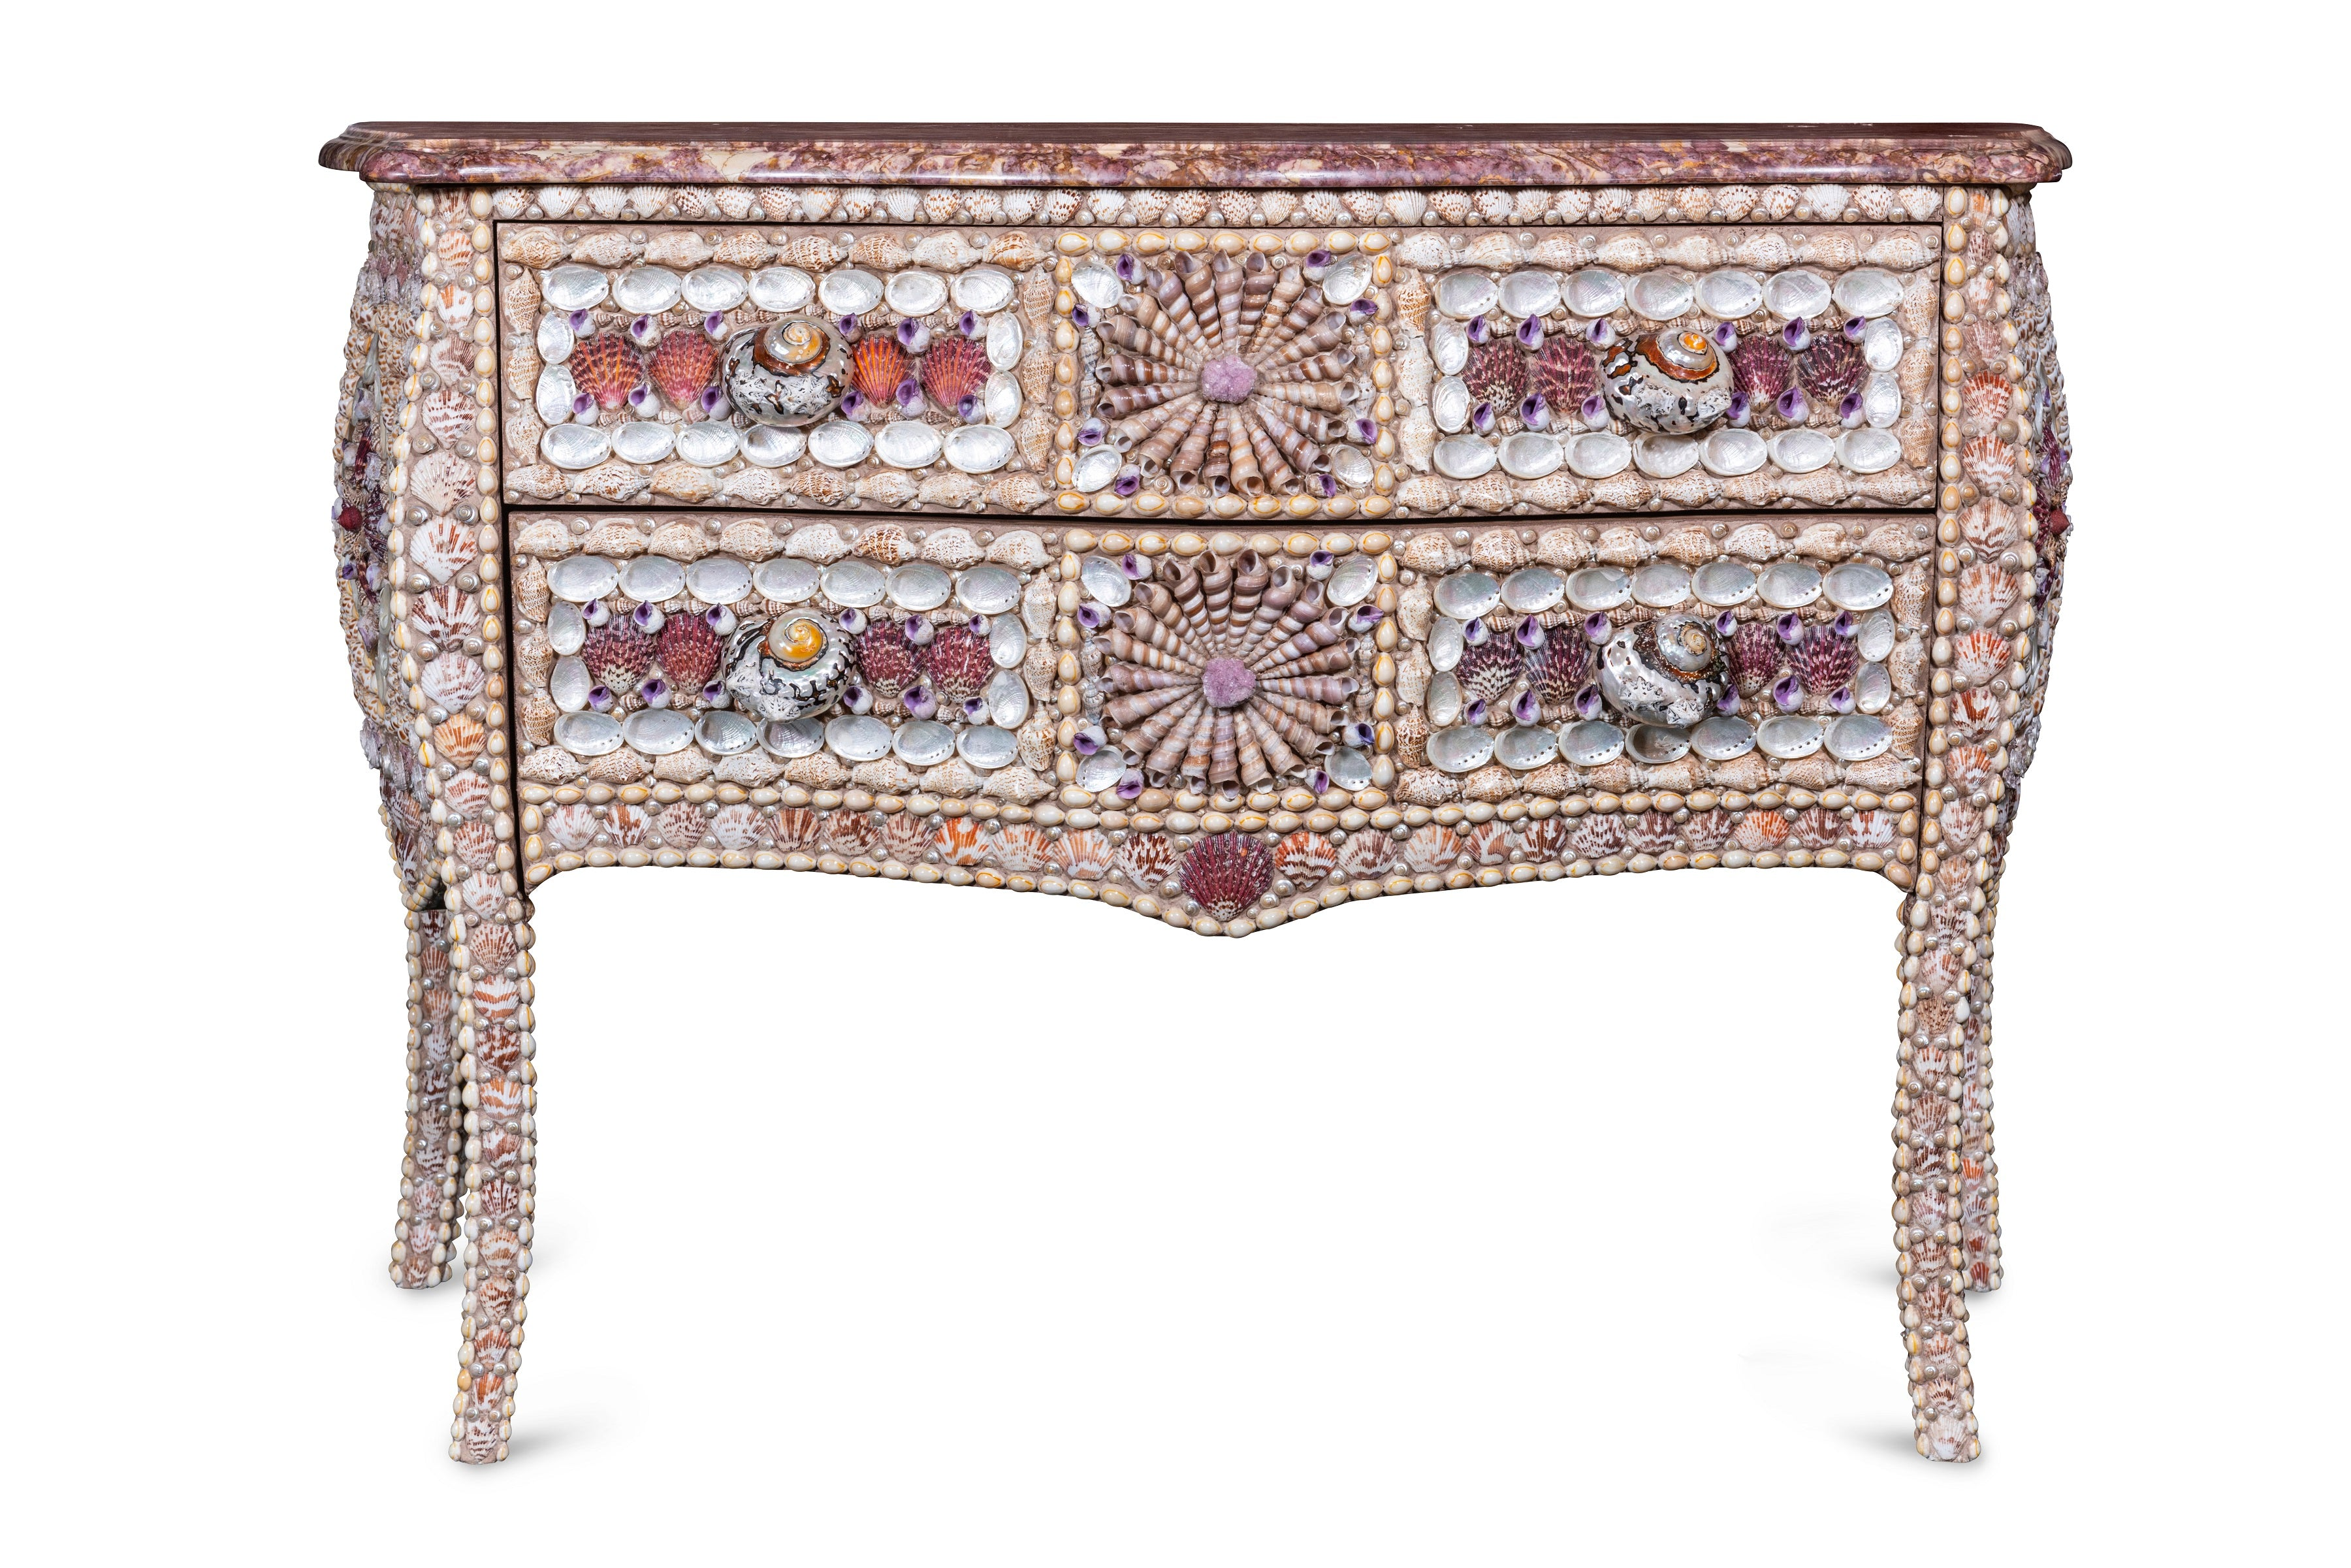 French Shell Inlaid Serpentine Fronted Bombe Commode in the Louis XV Style